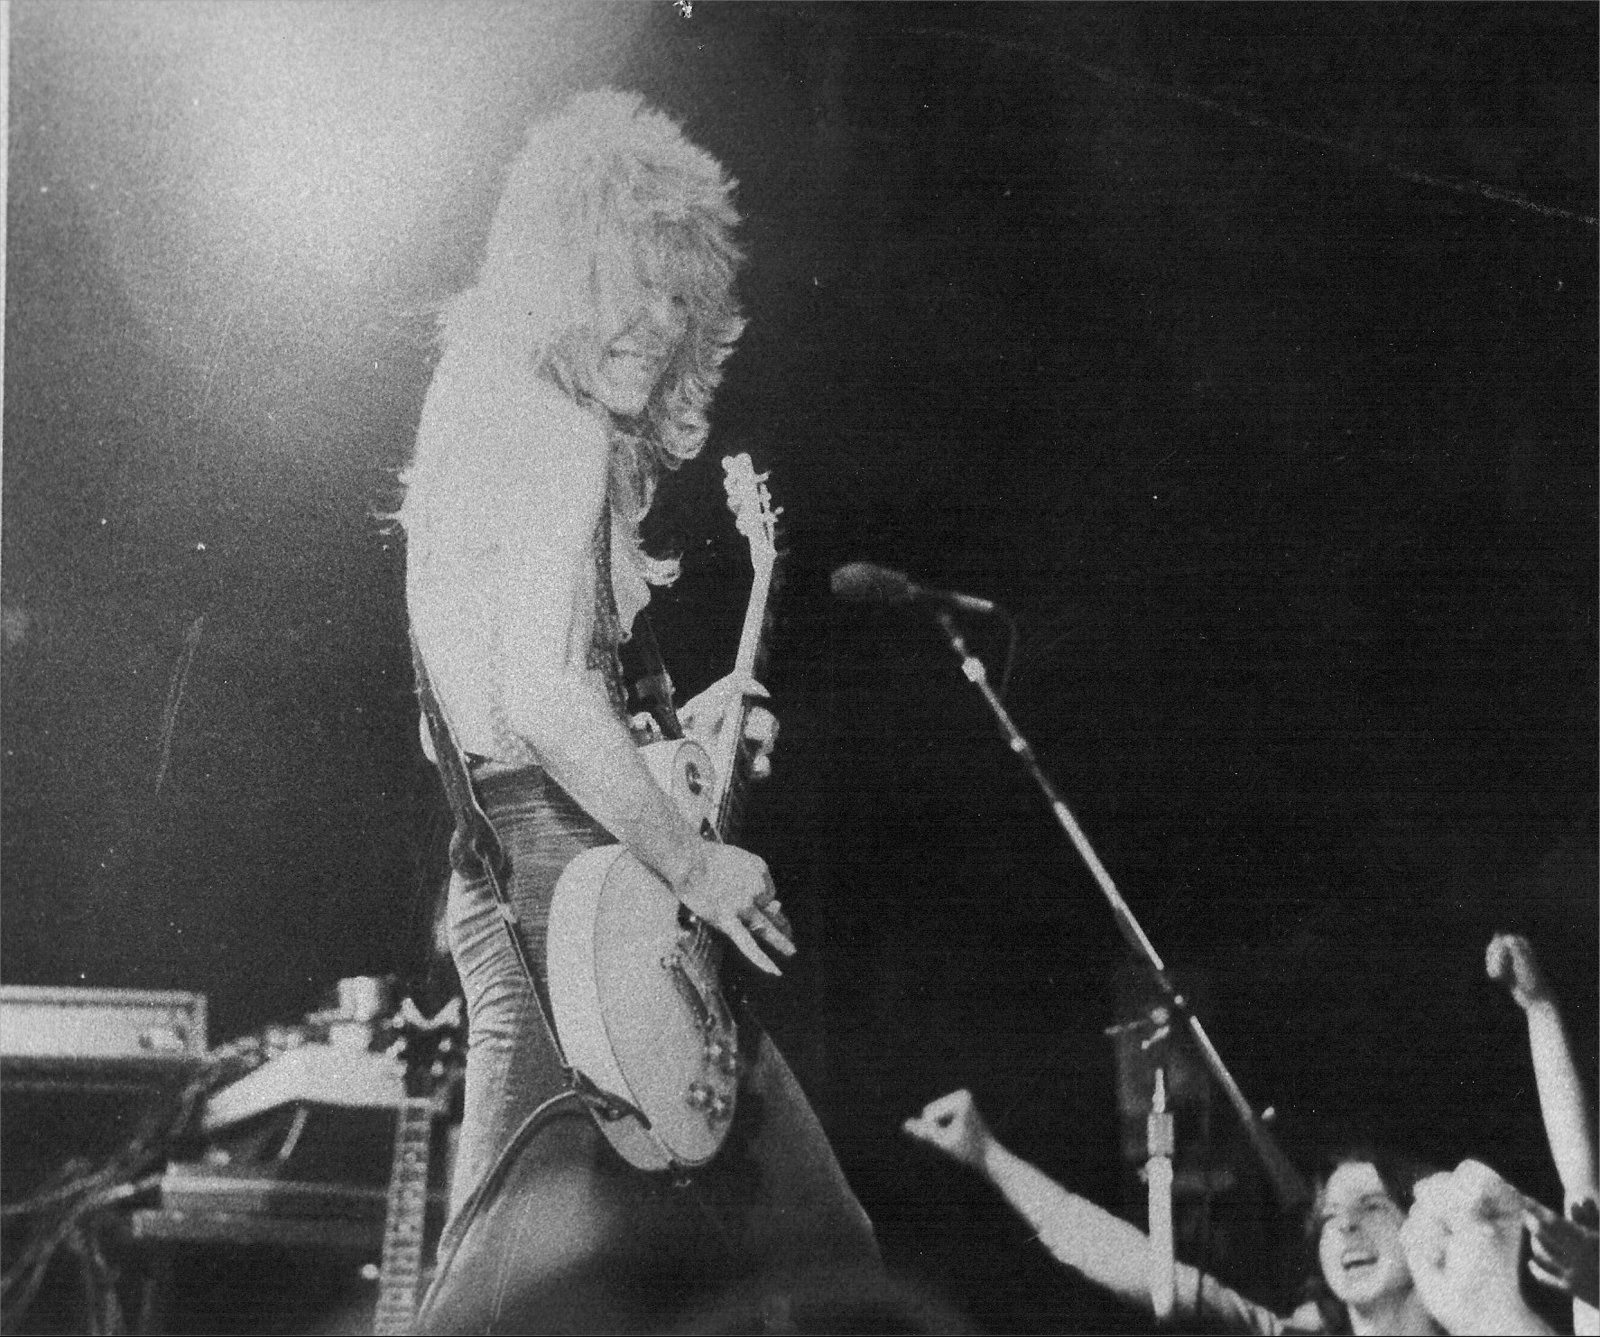 Randy Rhoads - on stage